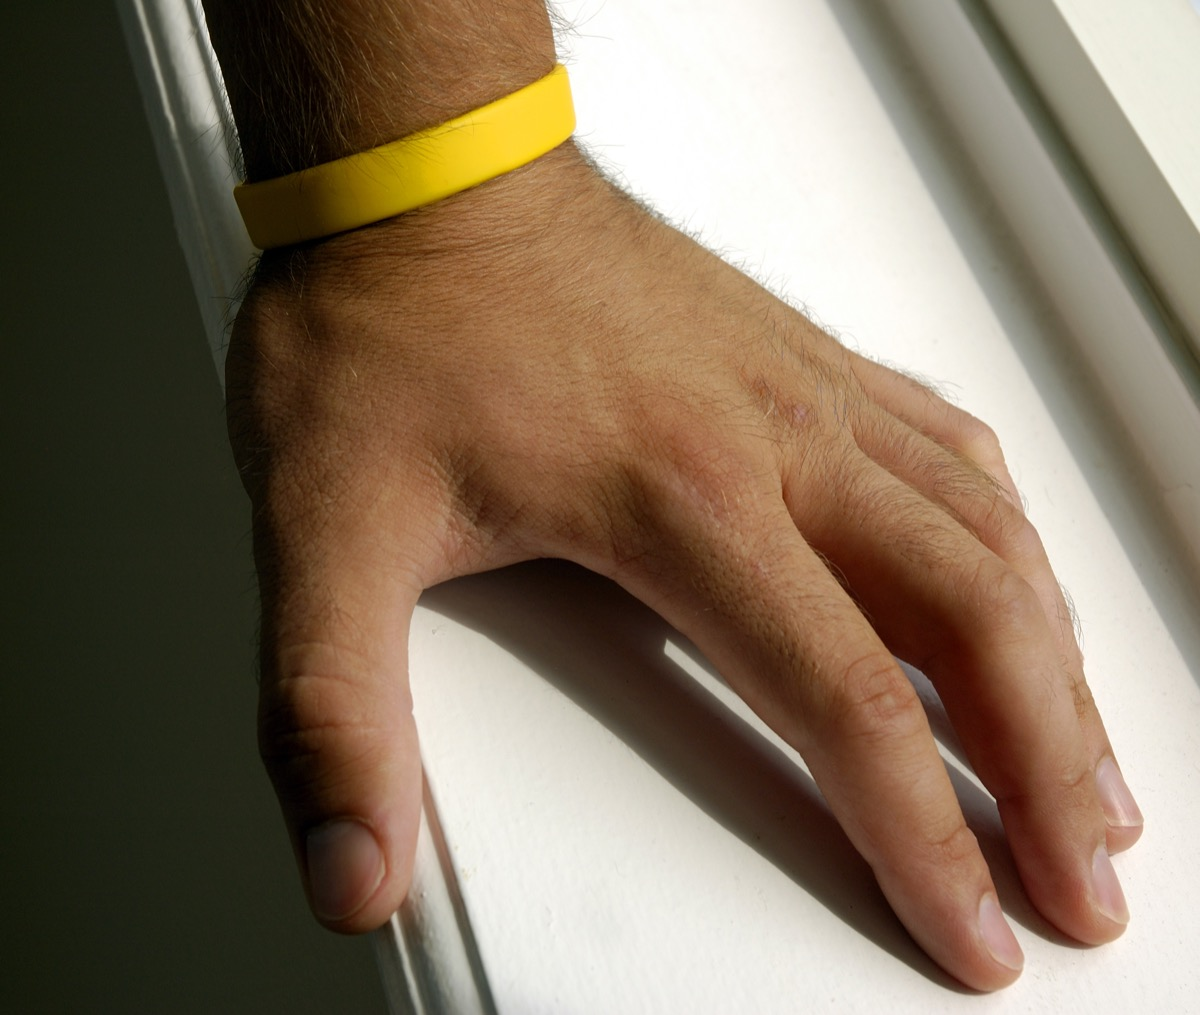 Yellow Wristband For Lance Armstrong Cancer Foundation - Image